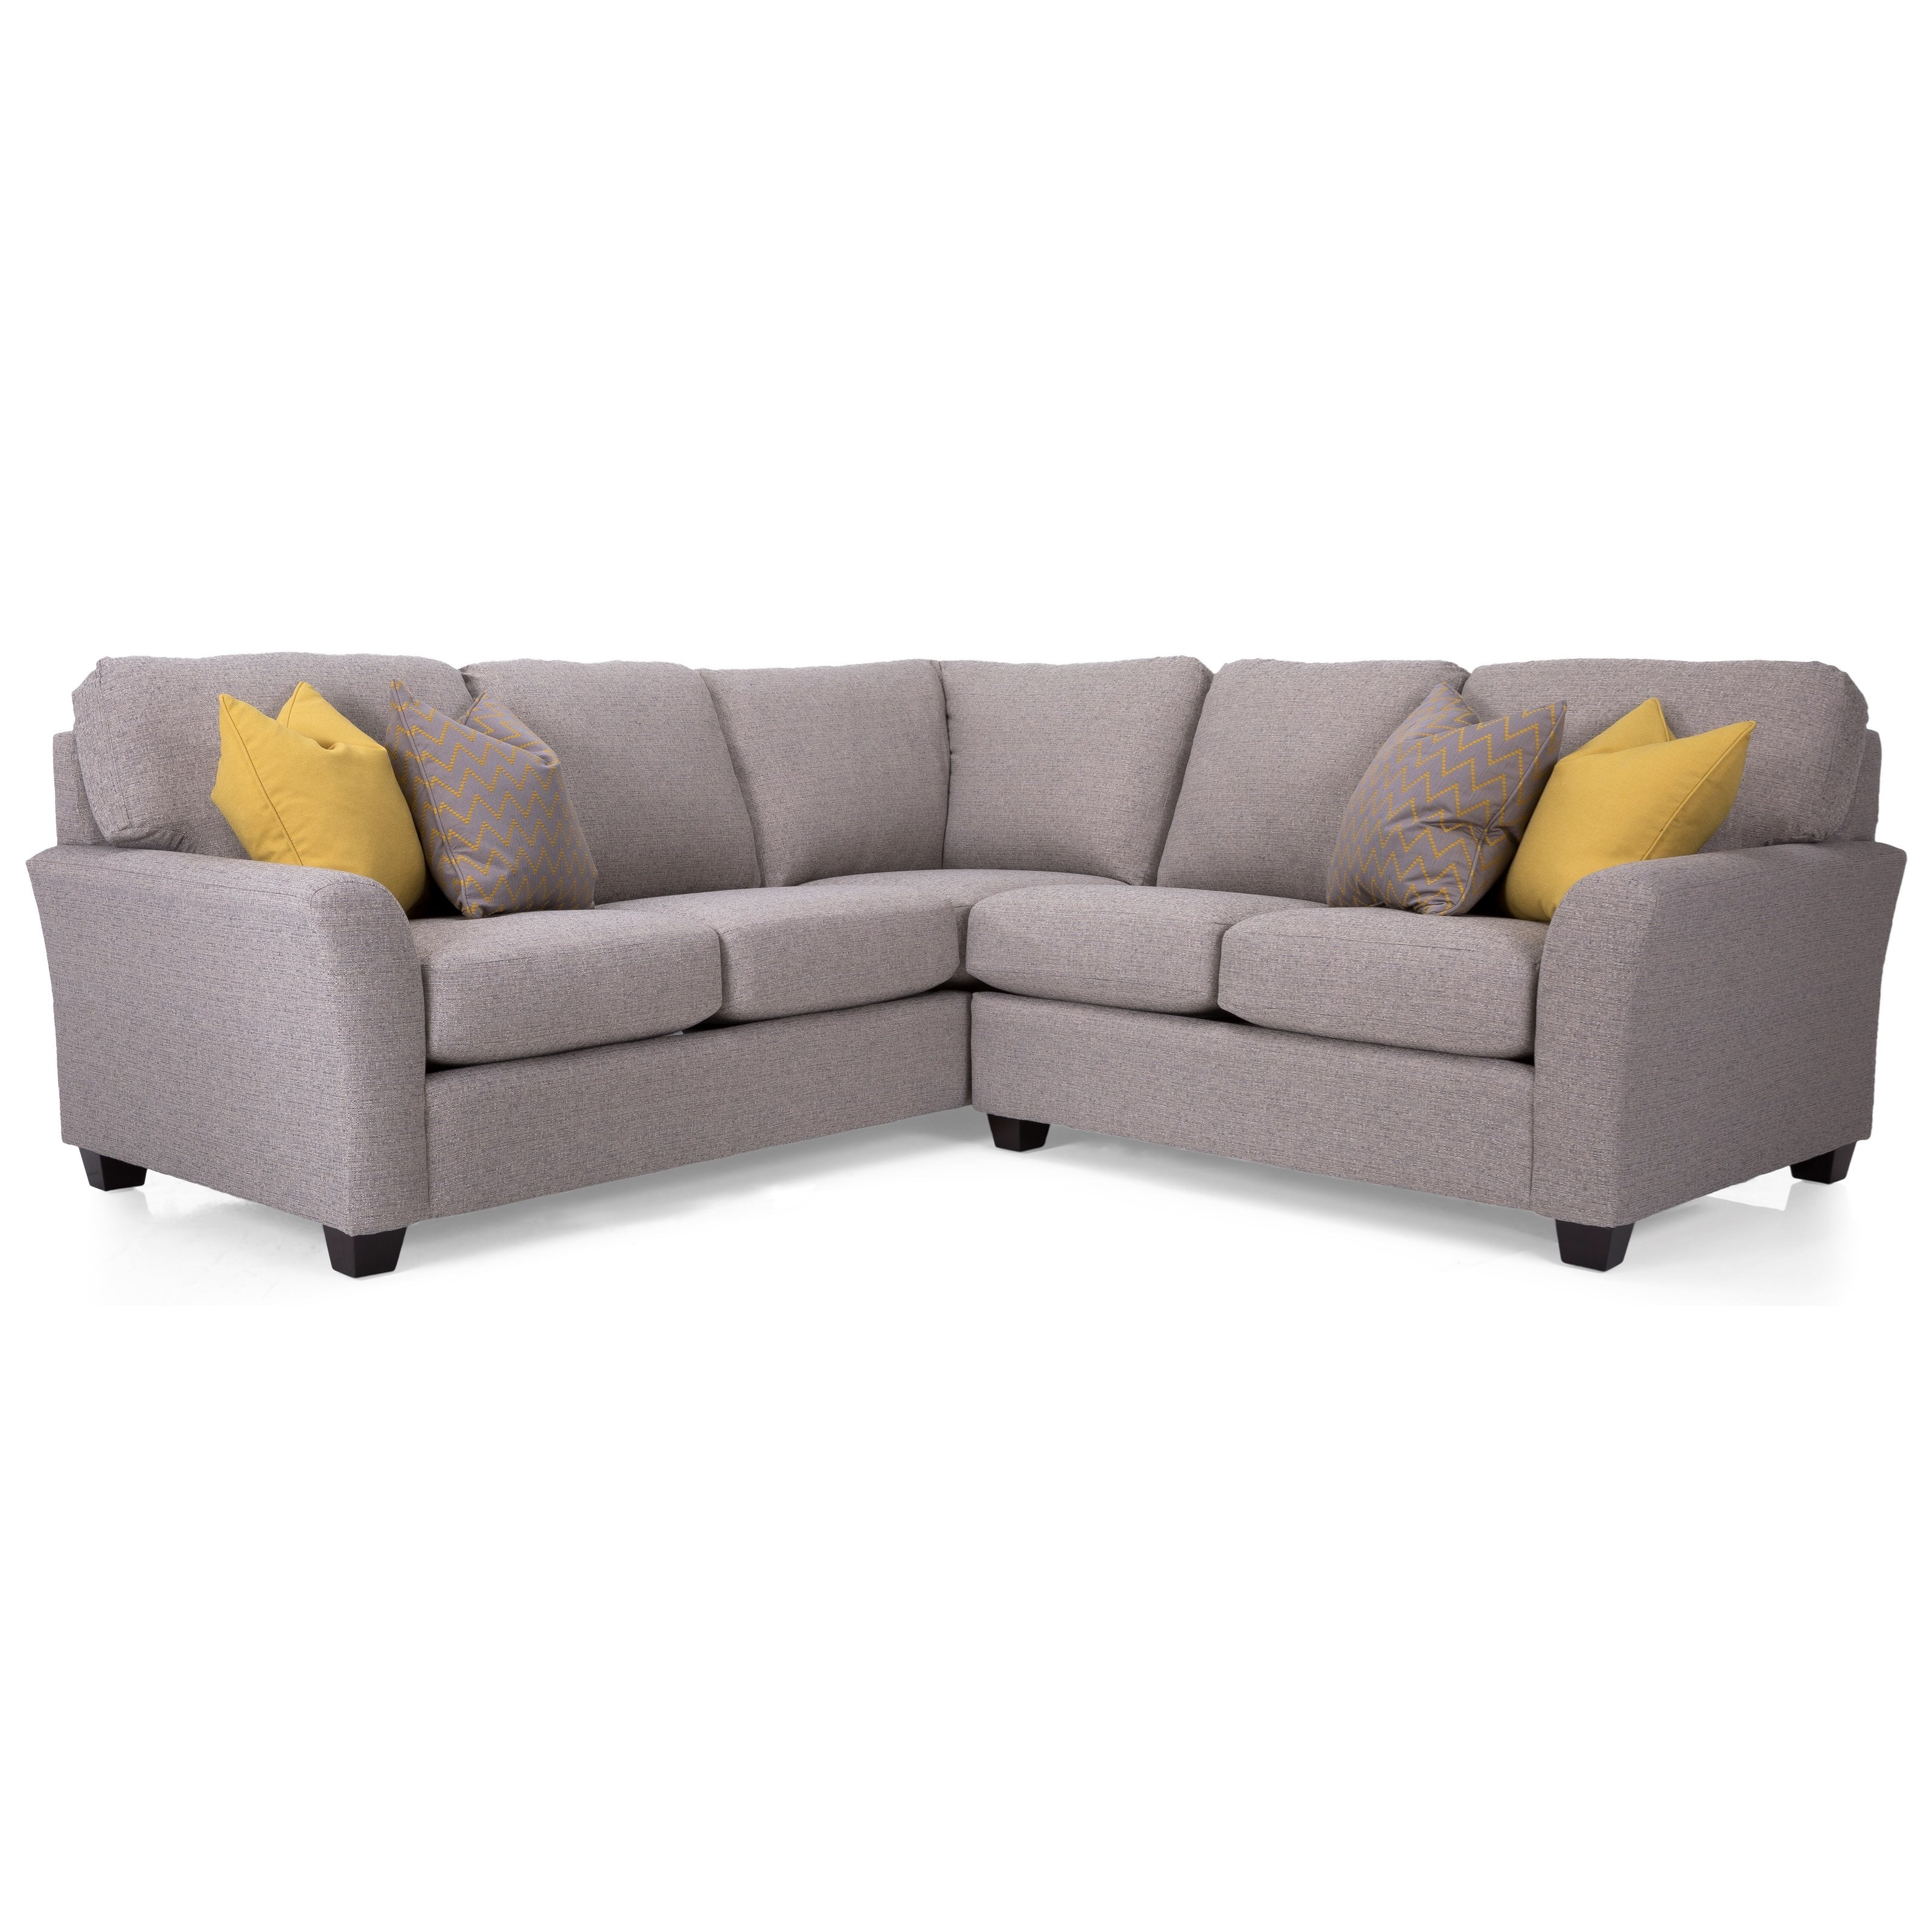 Alessandra Connections Sectional Sofa by Decor-Rest at Fine Home Furnishings